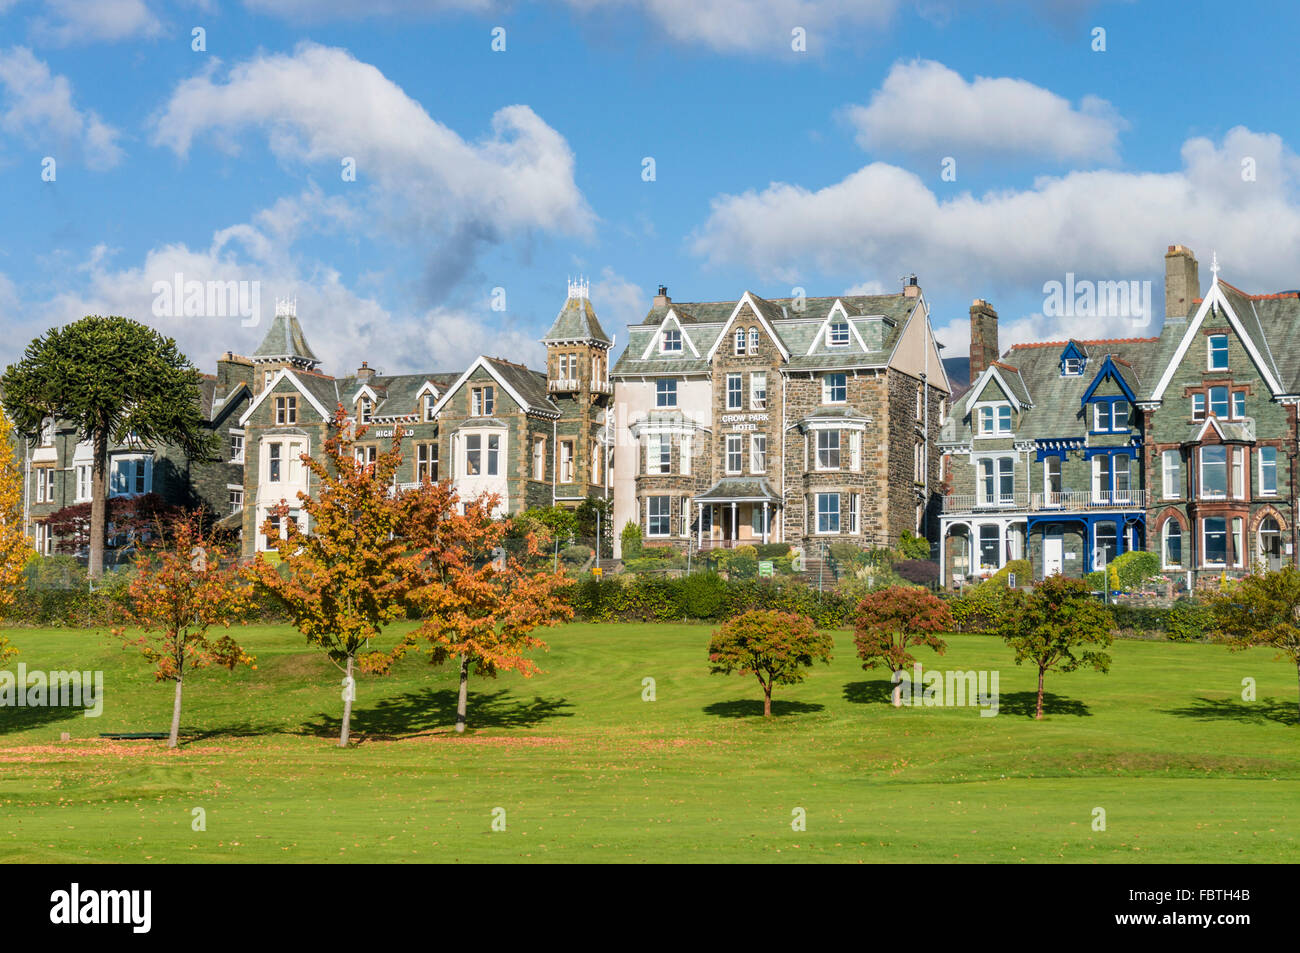 Hotels and bed and breakfast places on The Heads behind Hope Park Keswick Cumbria Lake district England uk gb eu - Stock Image